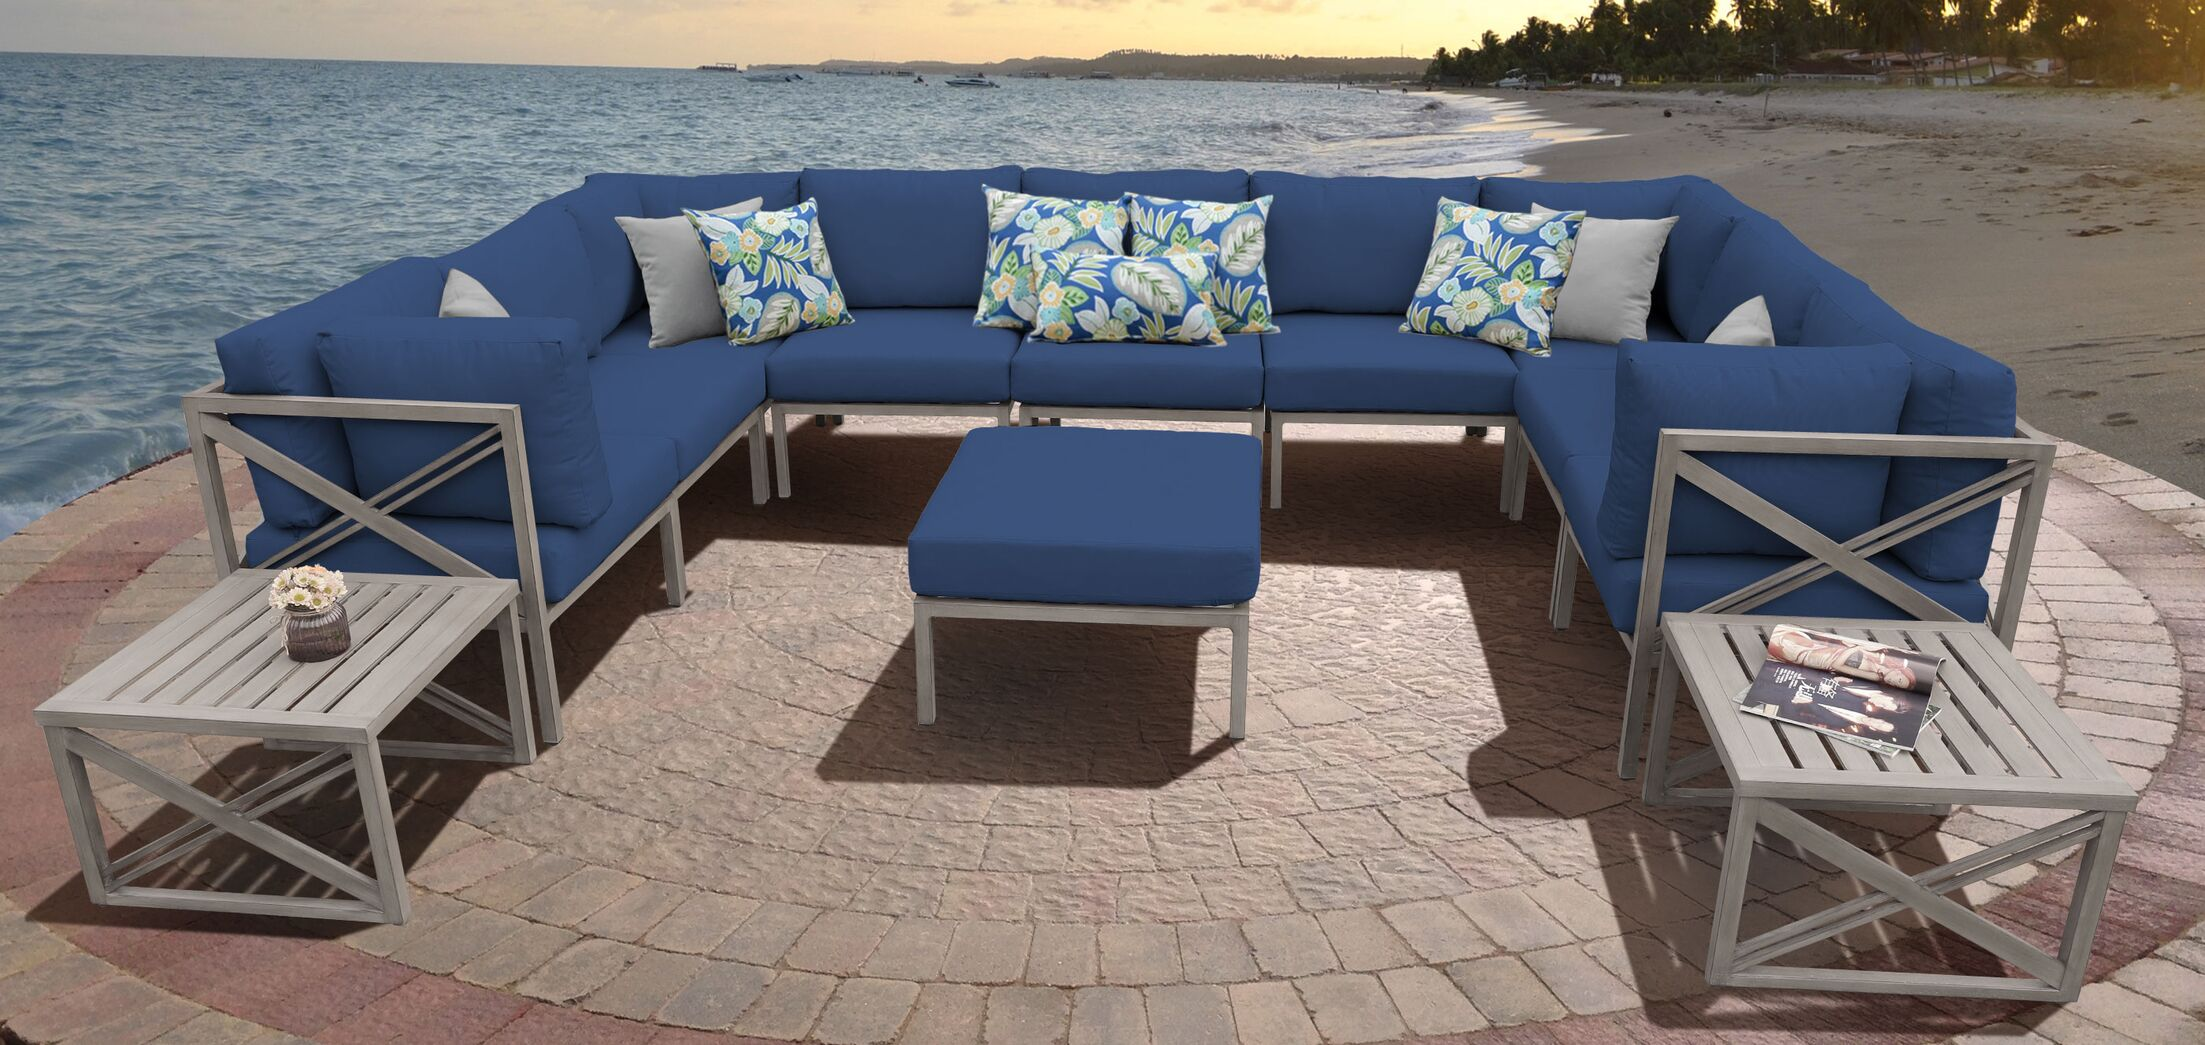 Carlisle 12 Piece Outdoor Sectional Set with Cushions Cushion Color: Navy